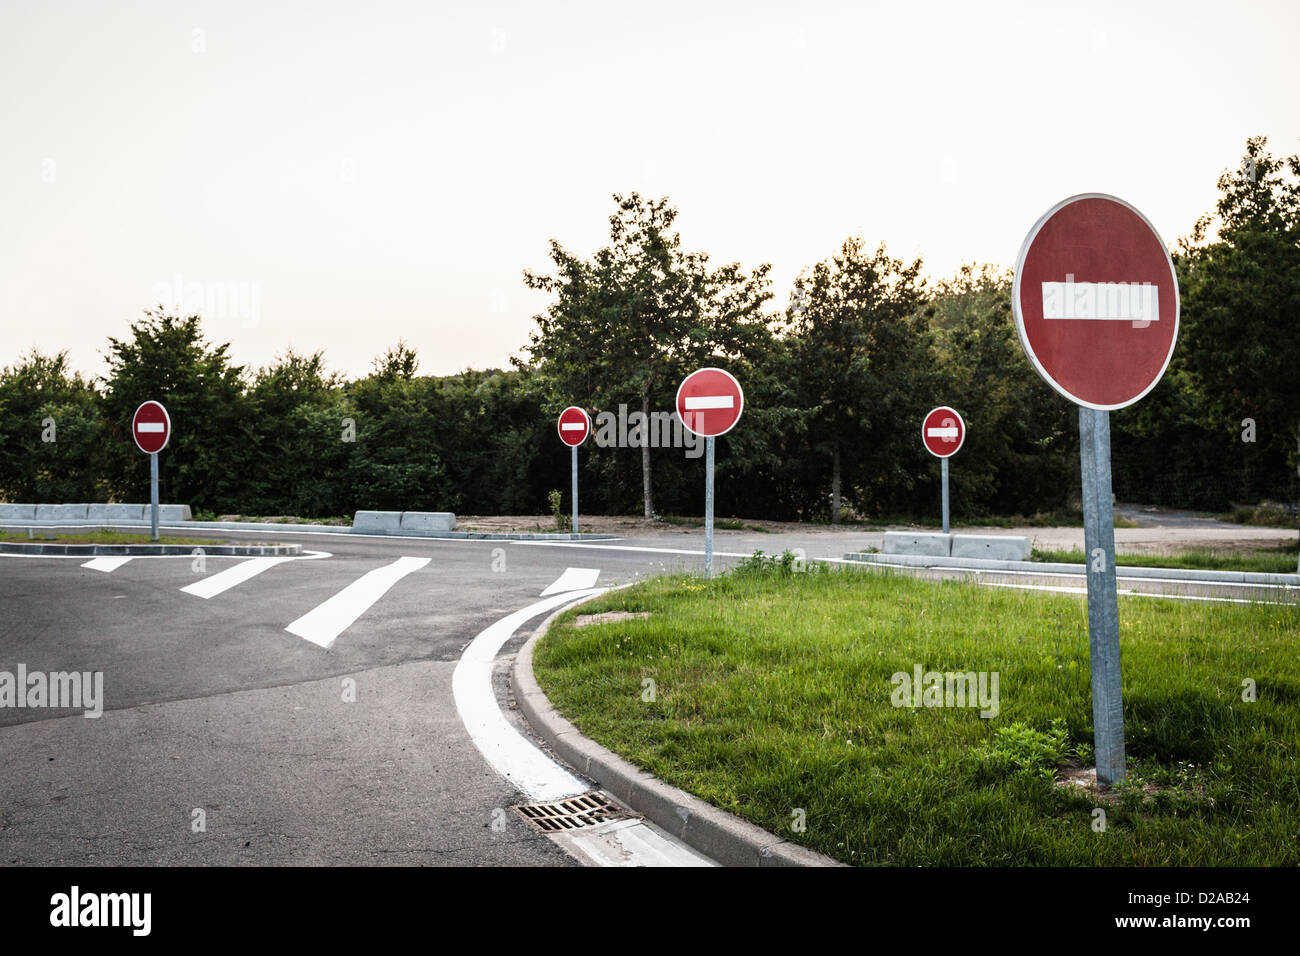 No entry signs on rural road - Stock Image